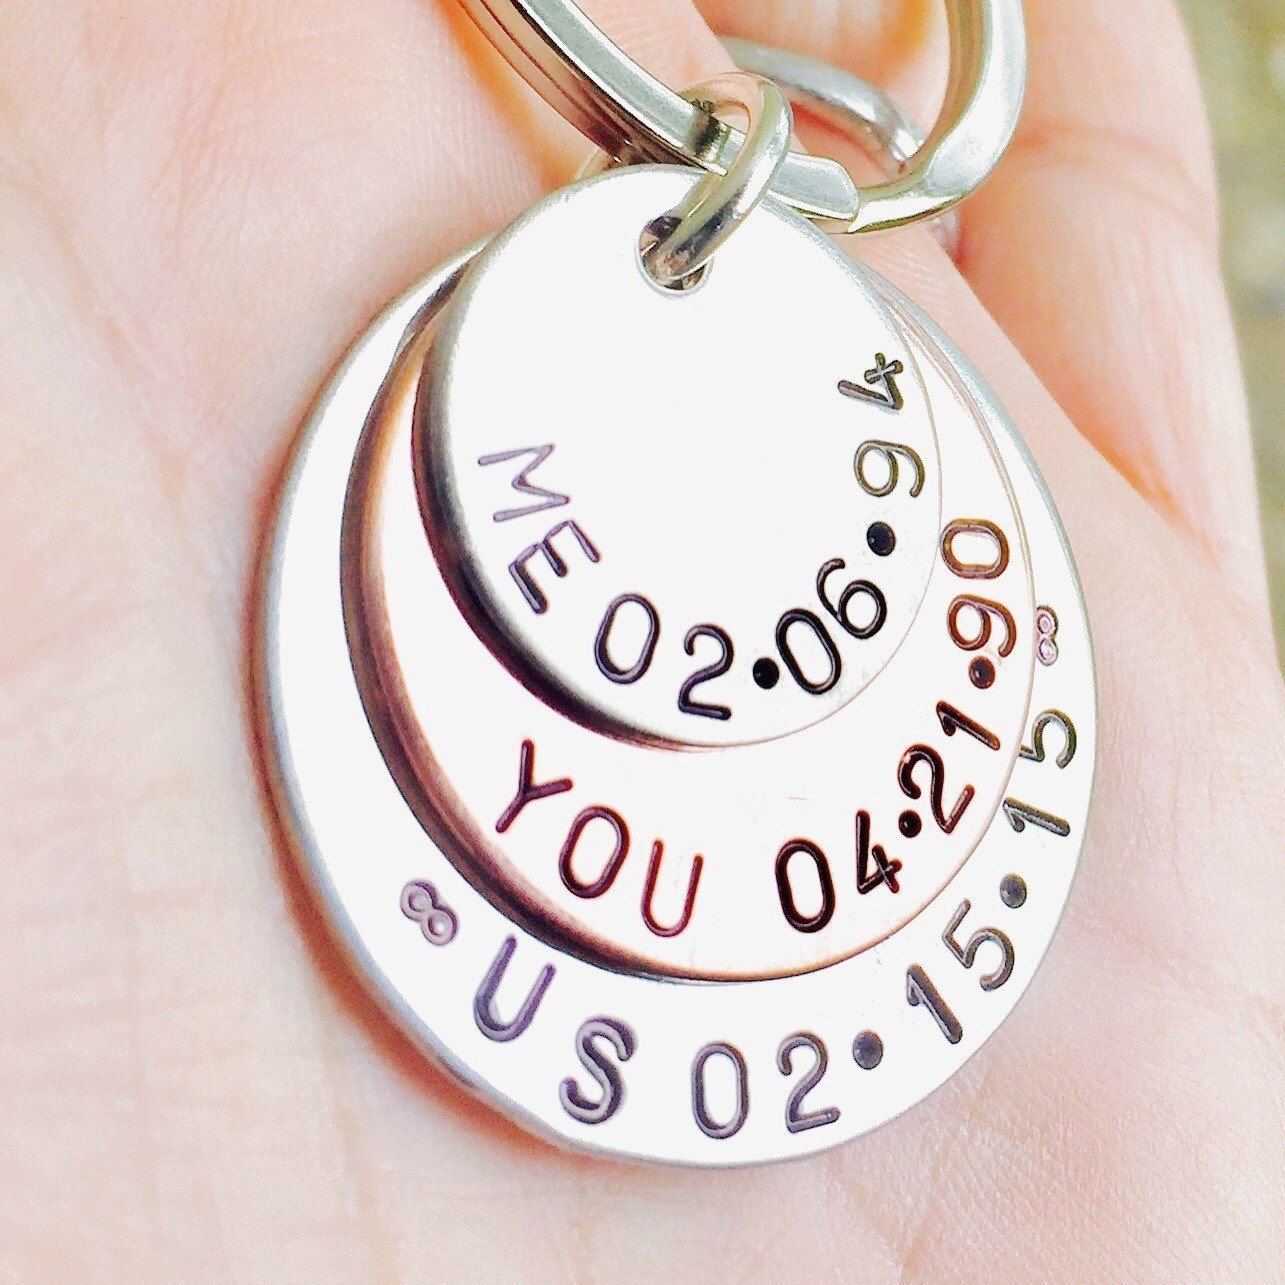 father's day gifts, key chain, mens gifts, dad key chain, father